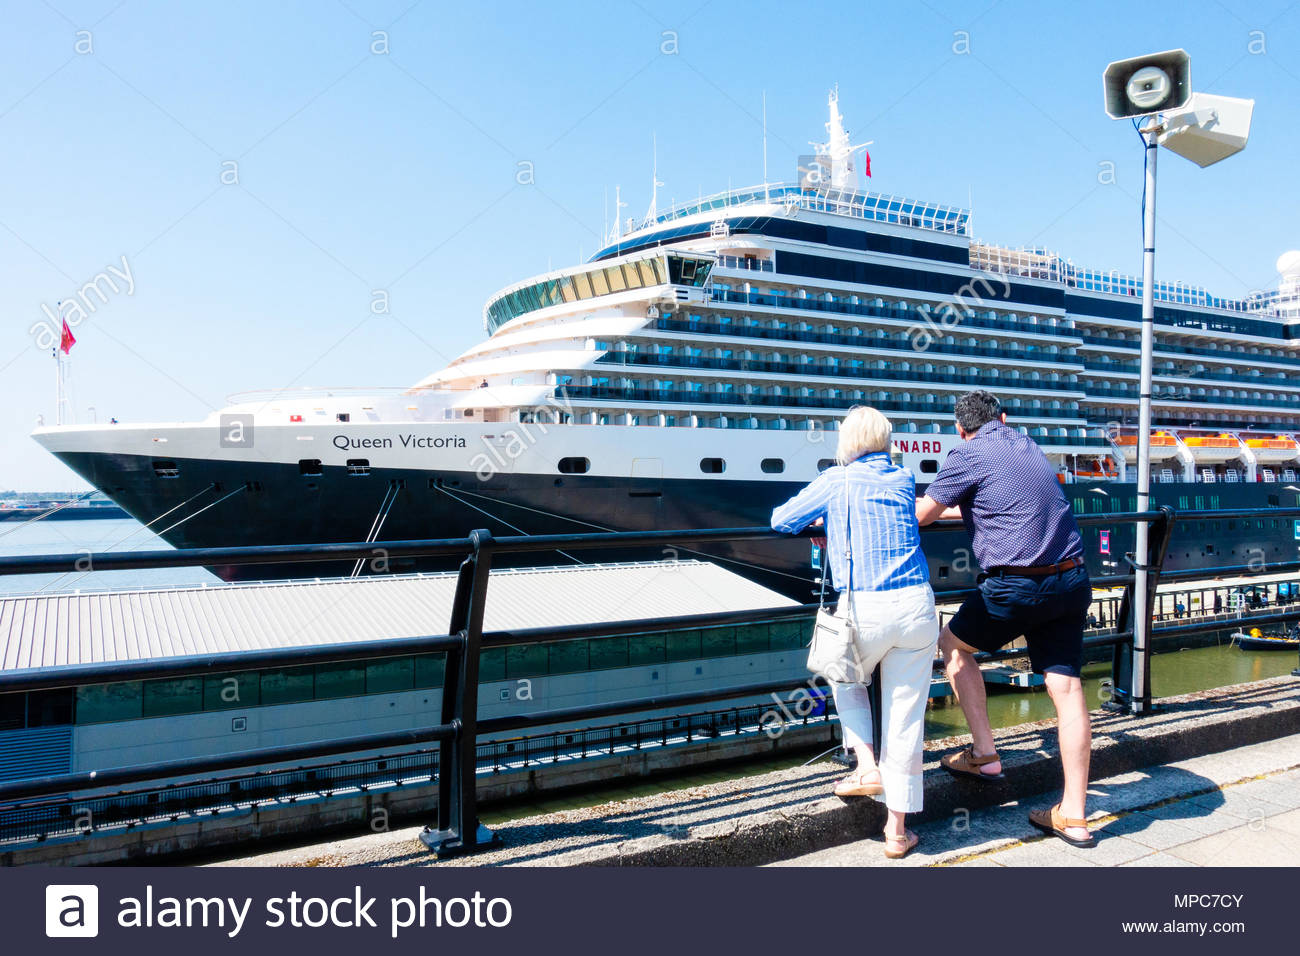 The Cunard Cruise Liner Queen Victoria berthed at the Pier Head in Liverpool, People on their lunch break admire the large passenger ship on it's arrival in Liverpool, Merseyside, England on a very sunny day. Credit: Christopher Canty Photography/Alamy Live News Stock Photo